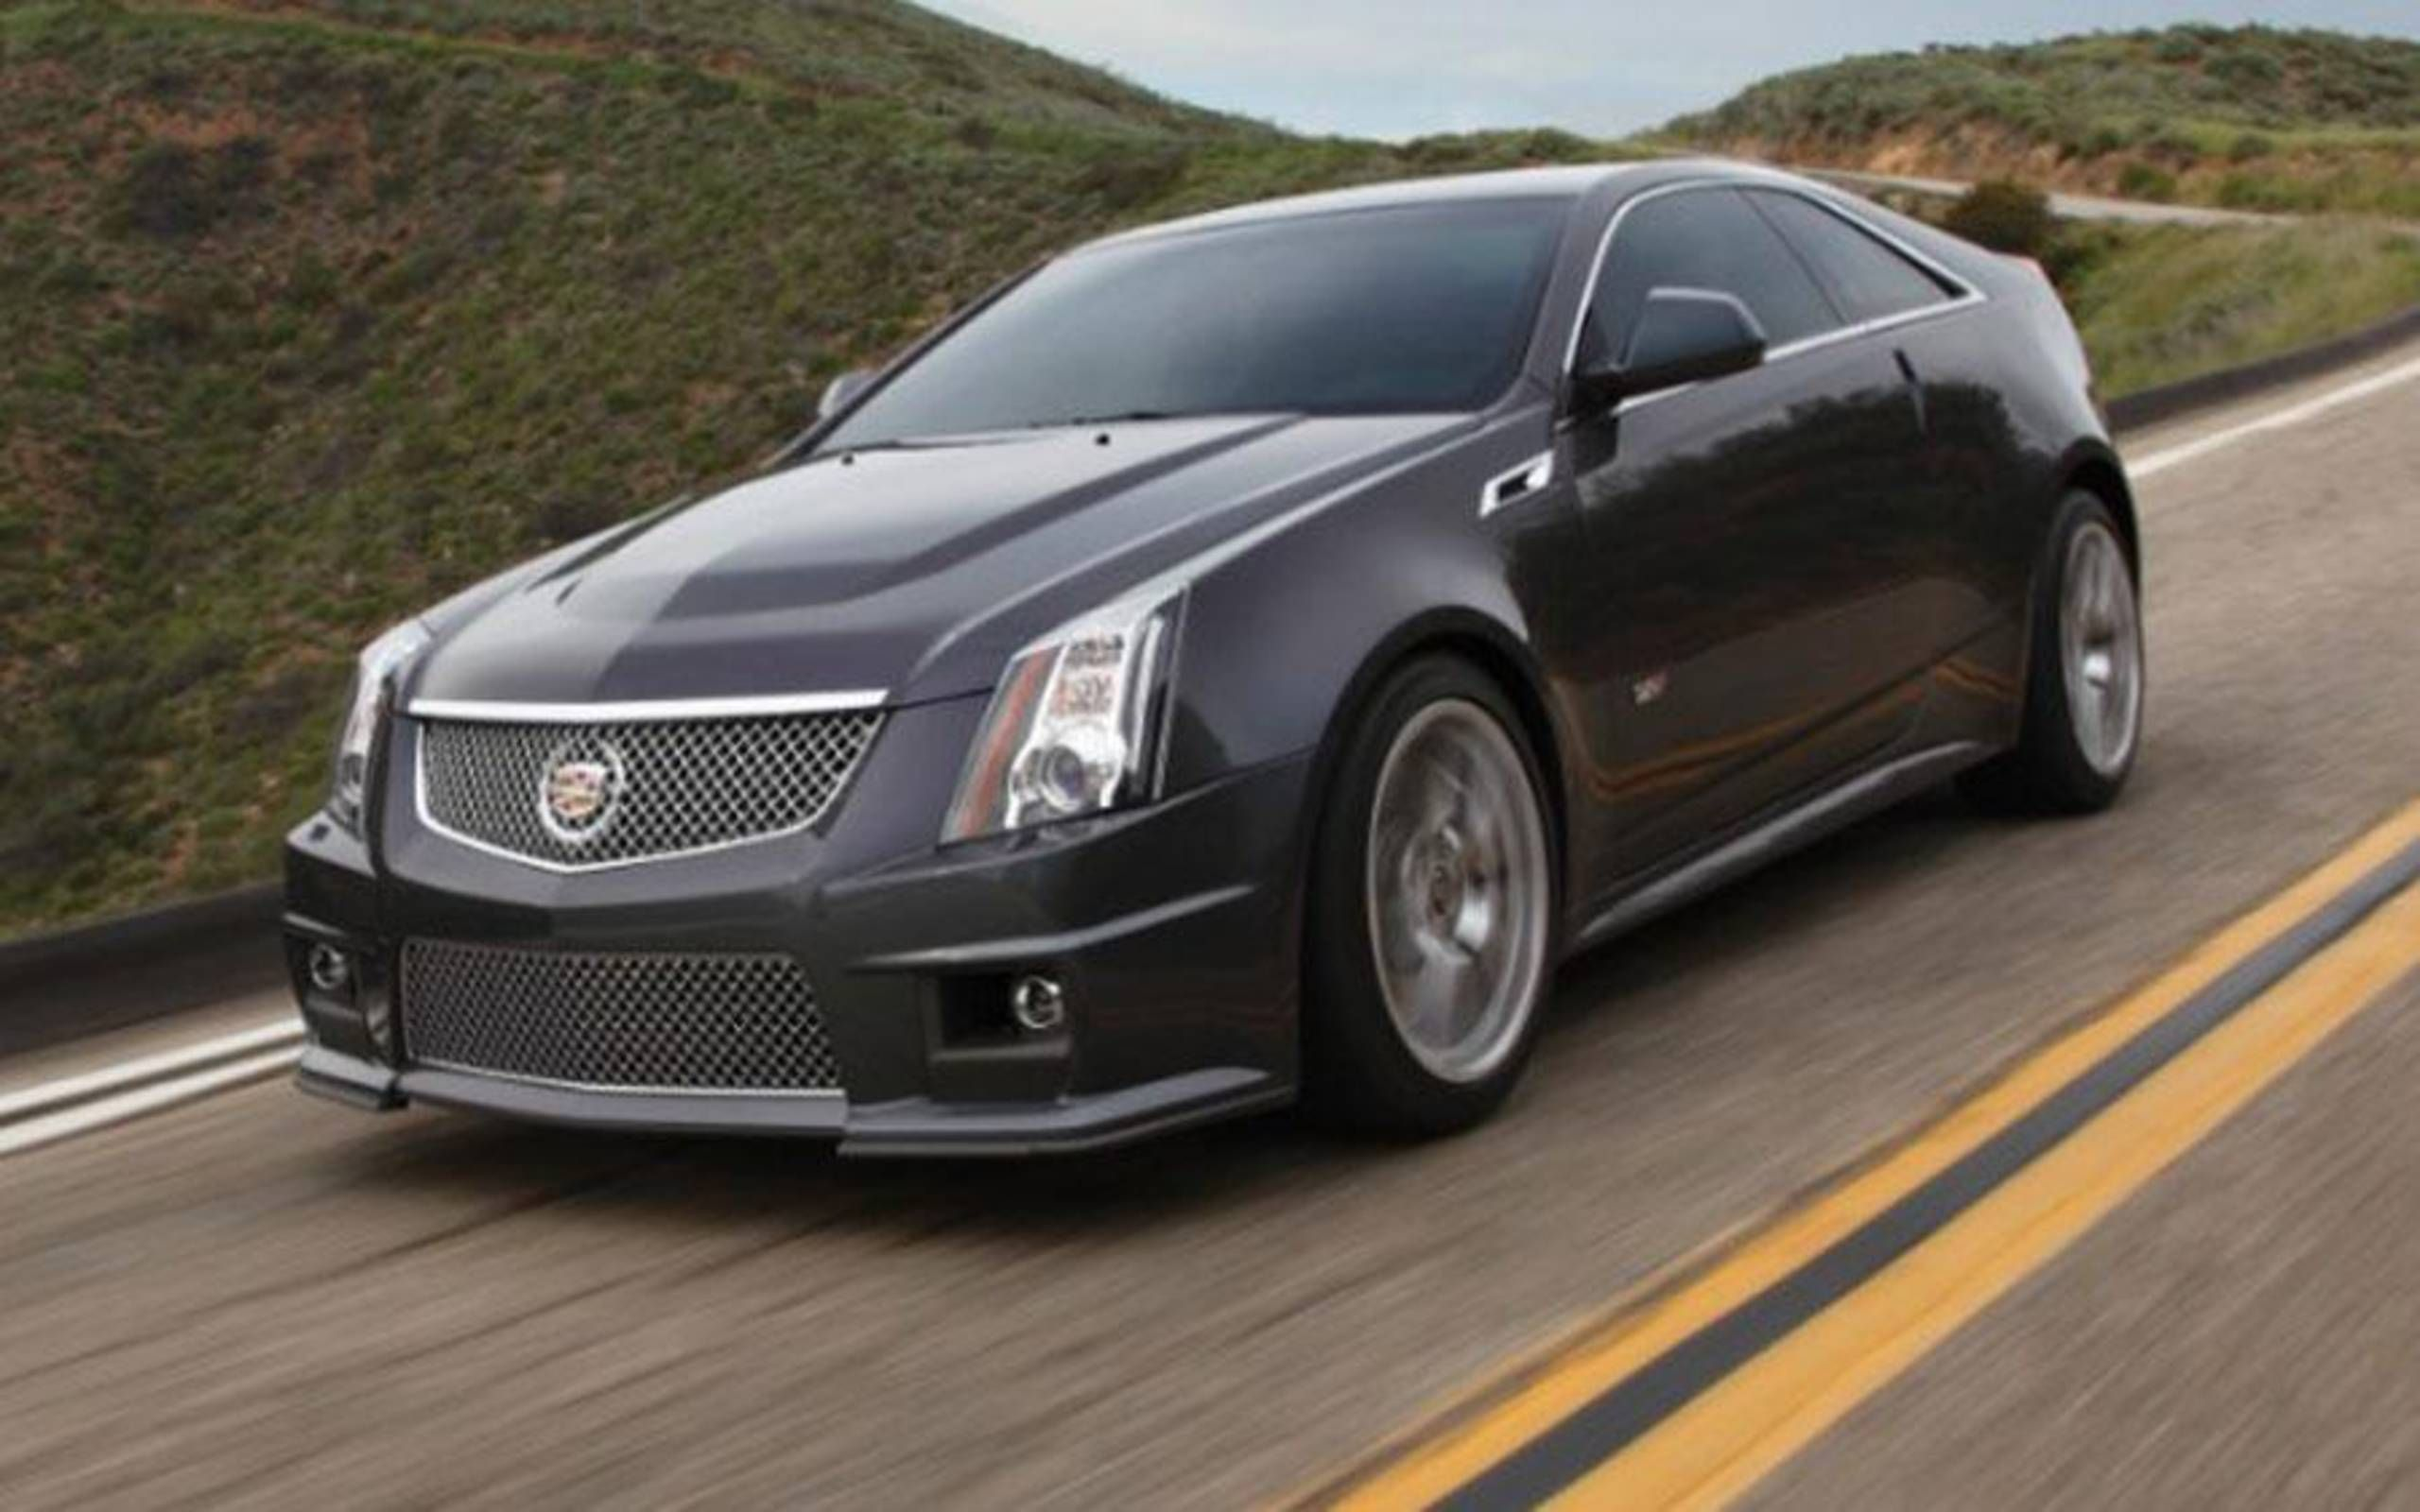 2012 Cadillac Cts V Coupe Review Notes We Re Still Not Tired Of The Cts V Coupe